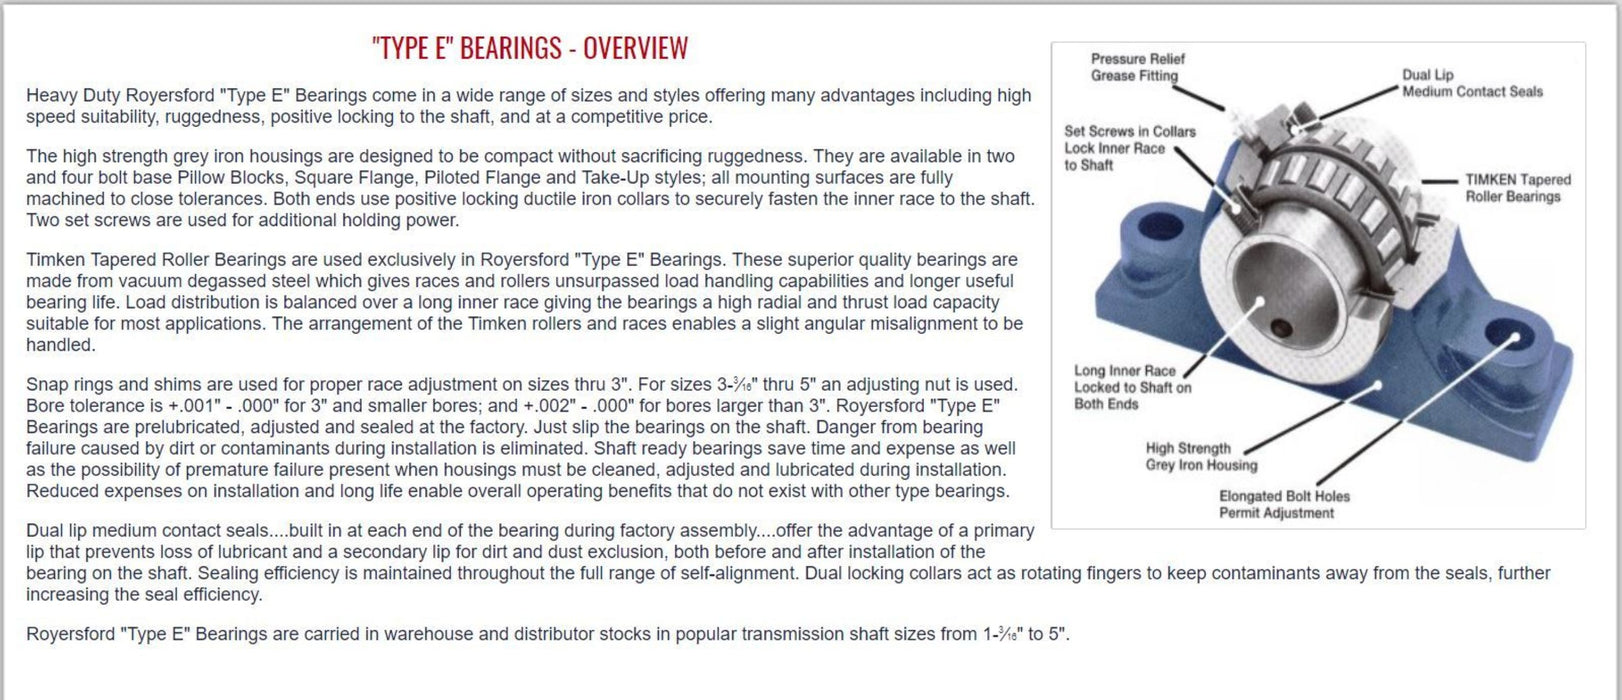 20-02-0204, ROYERSFORD TYPE E Pillow Block Bearing, 2-1/4 with Timken Tapered Roller Bearings